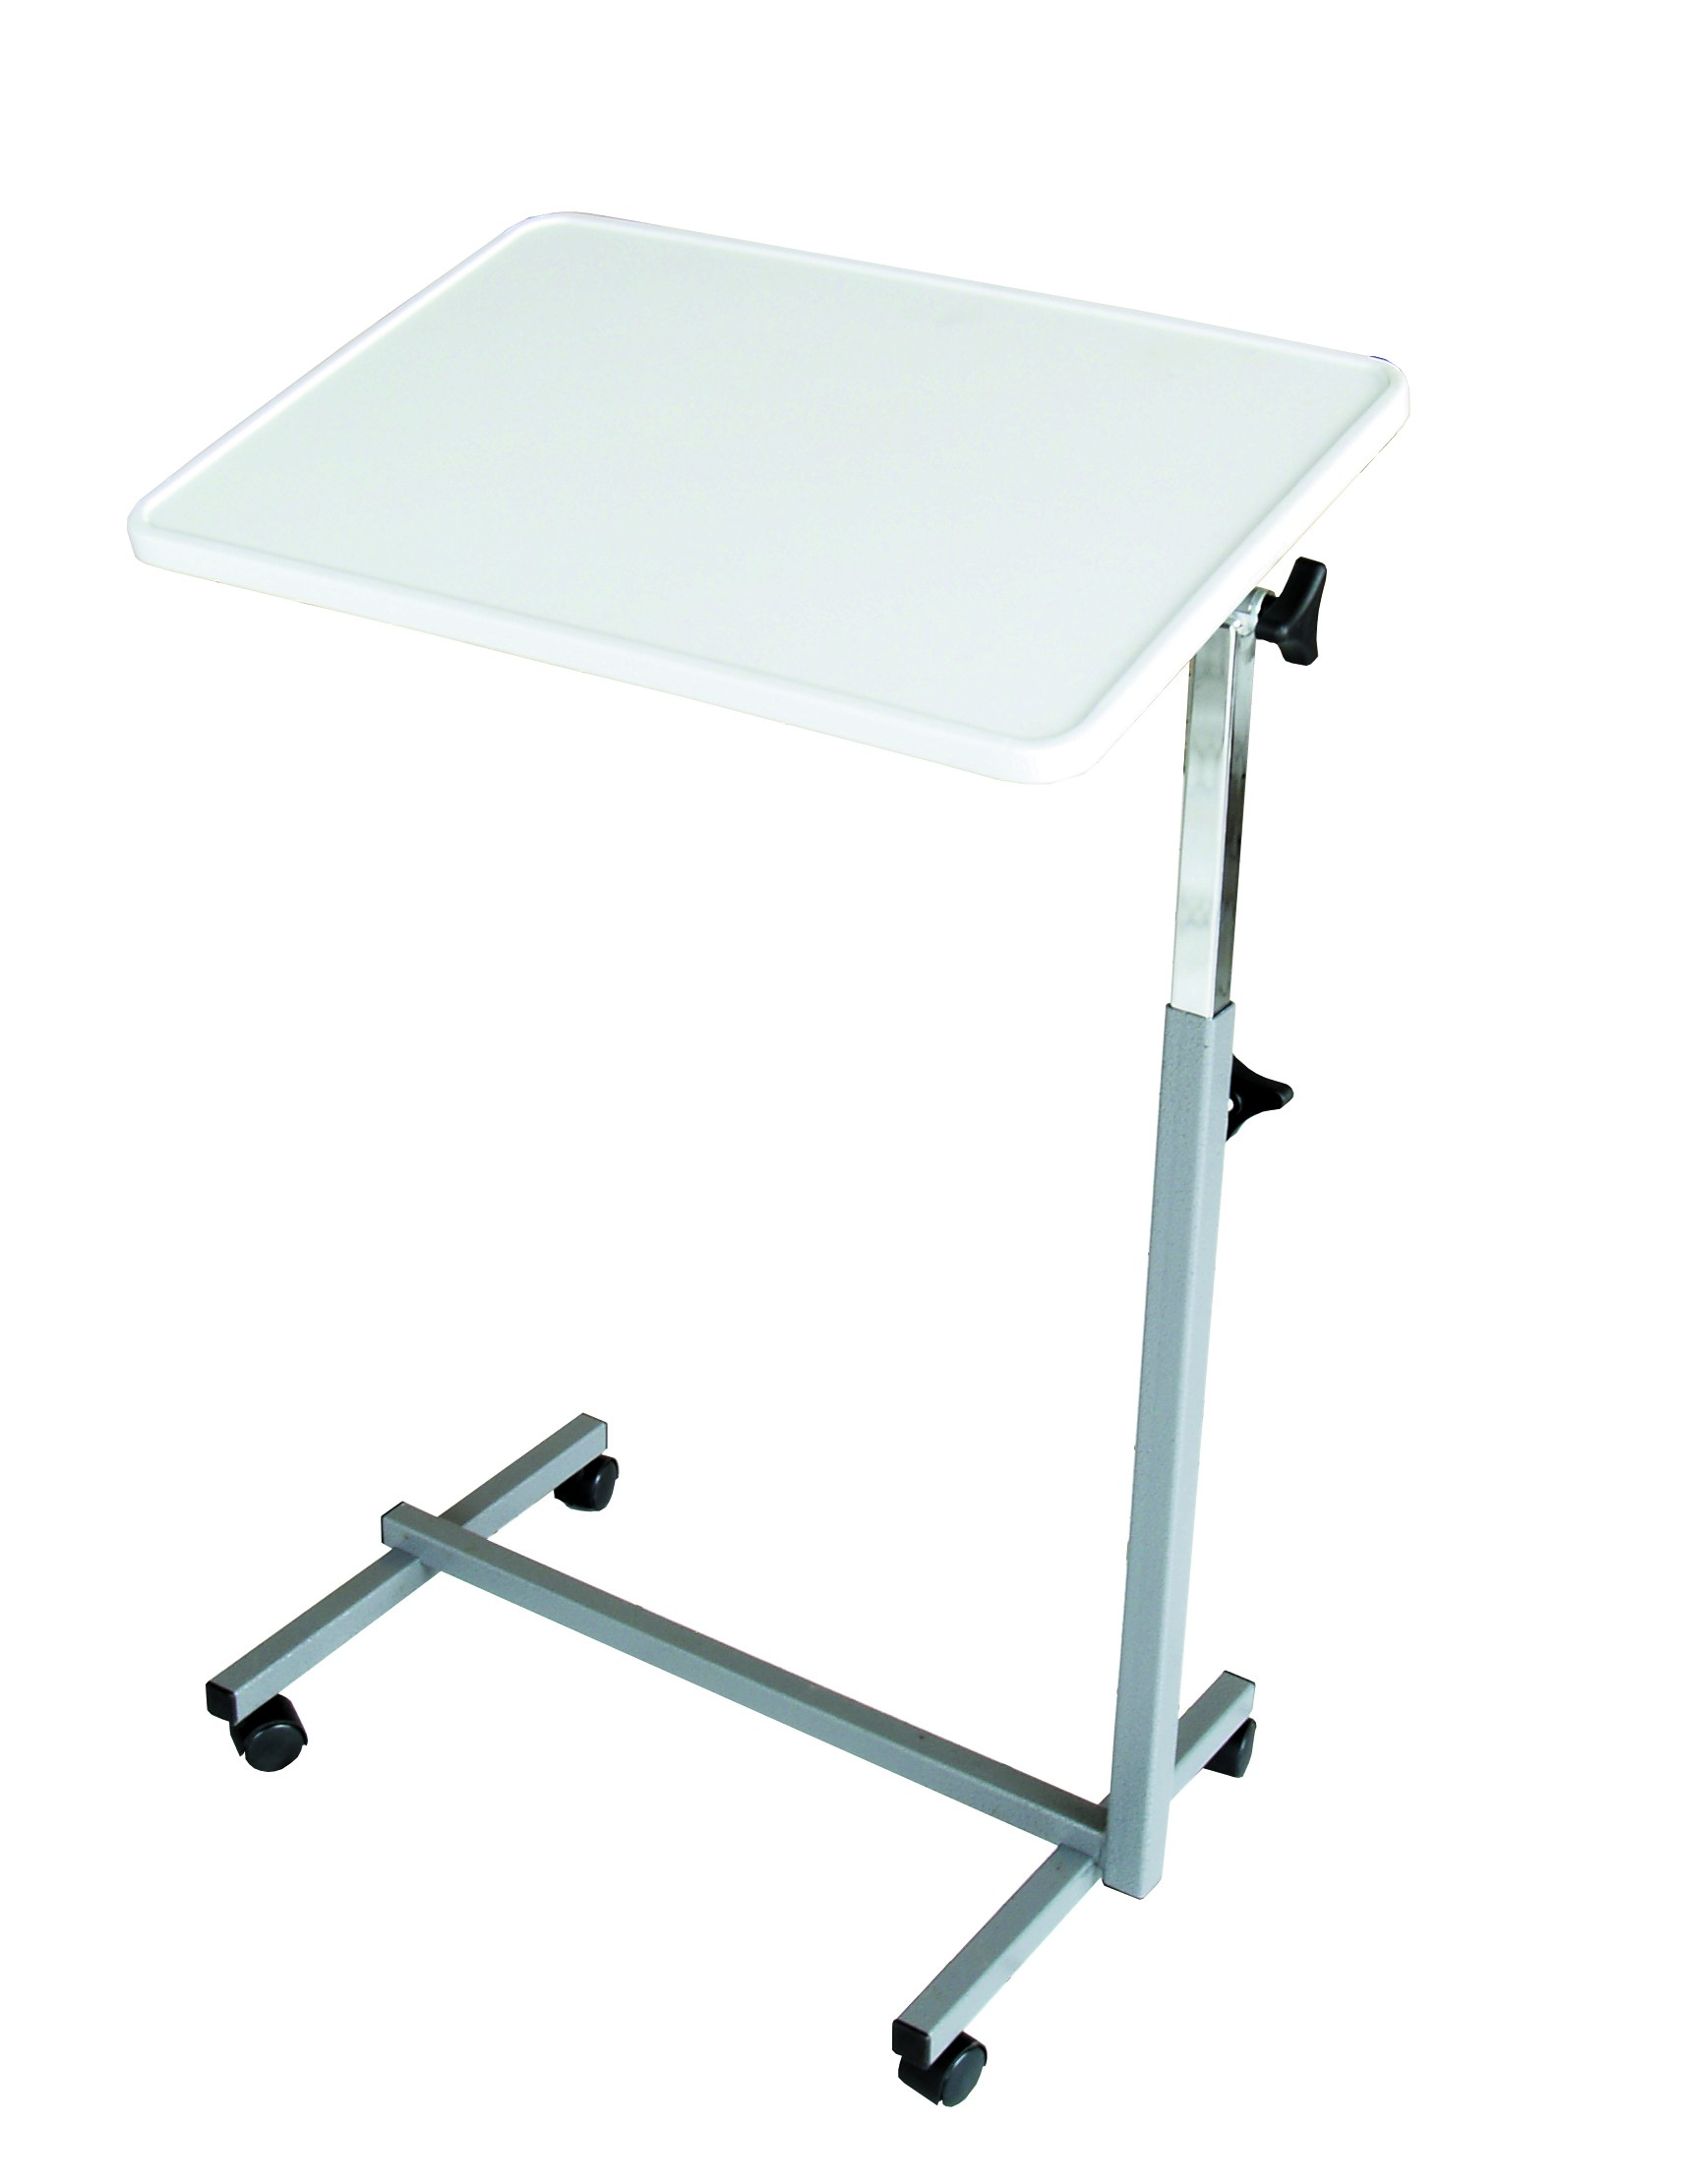 Table de lit roulettes easy table de lit acomodo - Table a roulettes ...